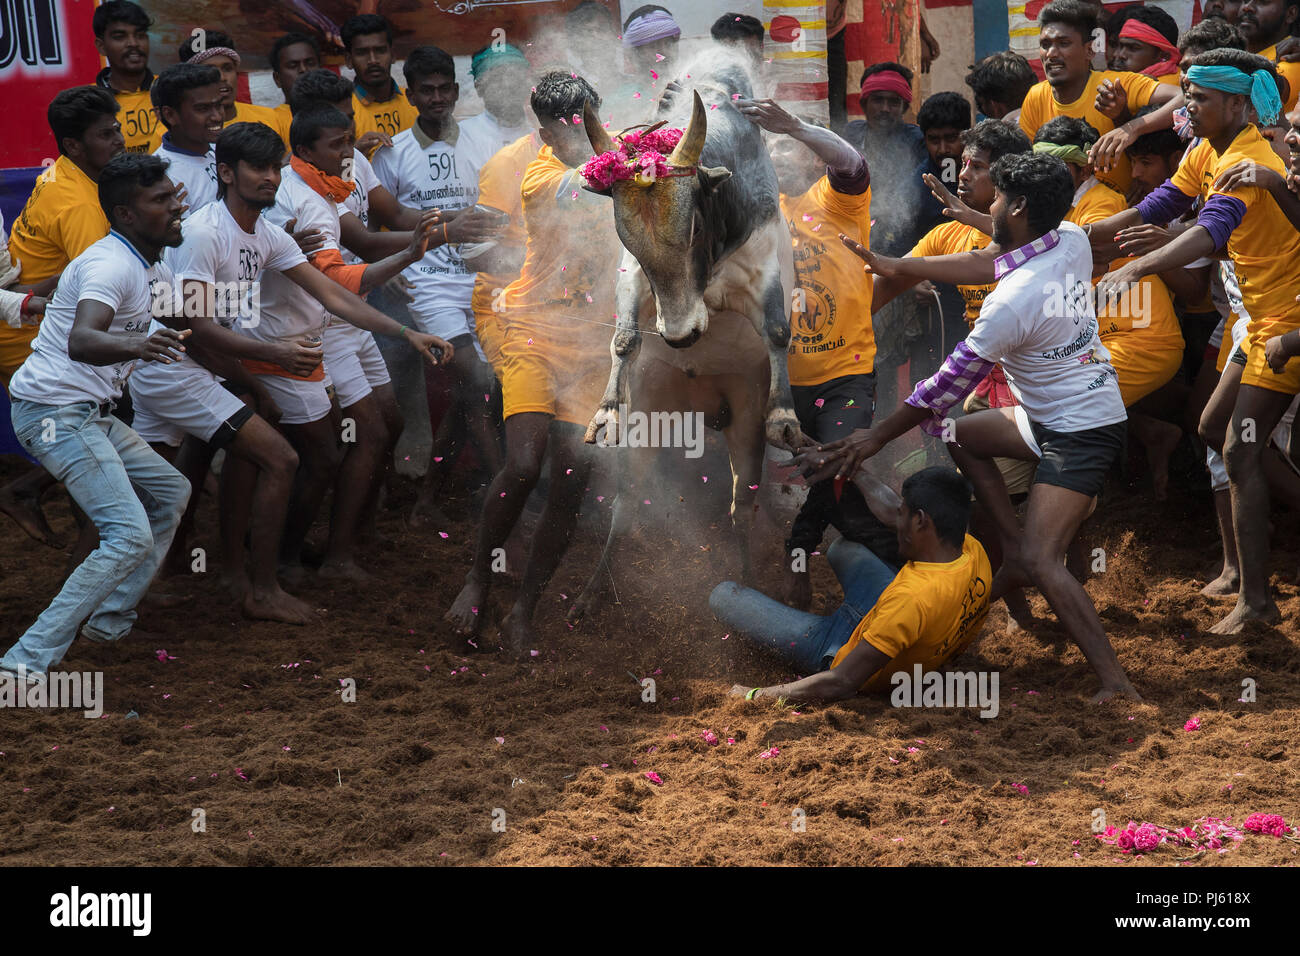 jallikattu bull high resolution stock photography and images alamy https www alamy com the image of jallikattu bull taming festival celebrated across tamilnadu as part of the cultural celebration in madurai india image217720970 html